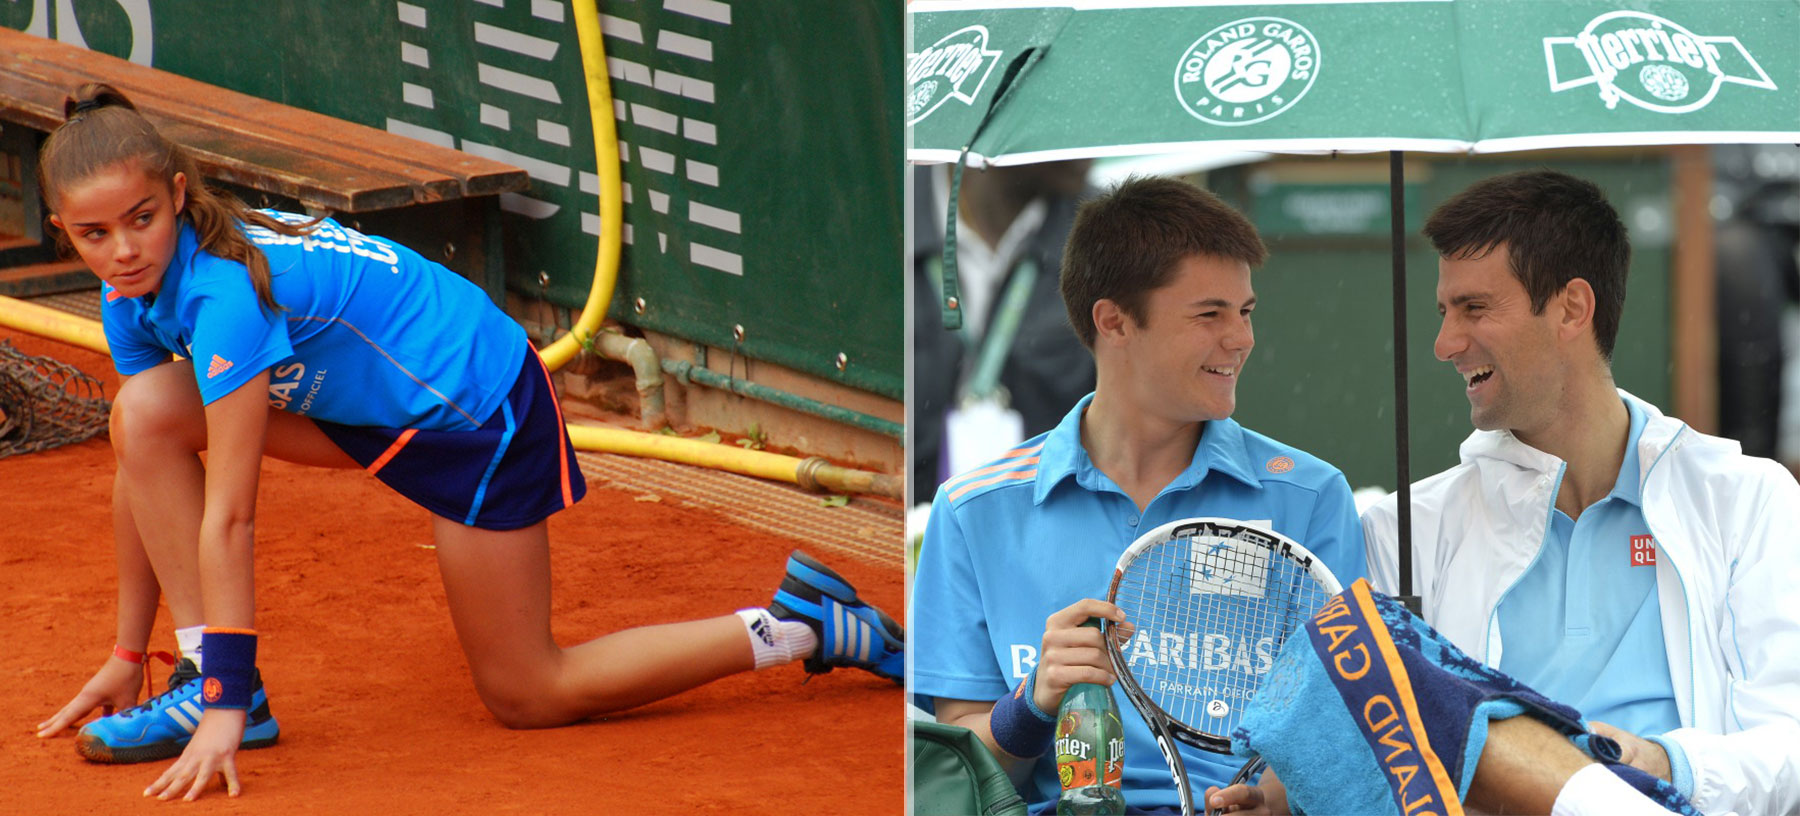 Roland Garros 2014 ball girls boys adidas equipment Djokovic